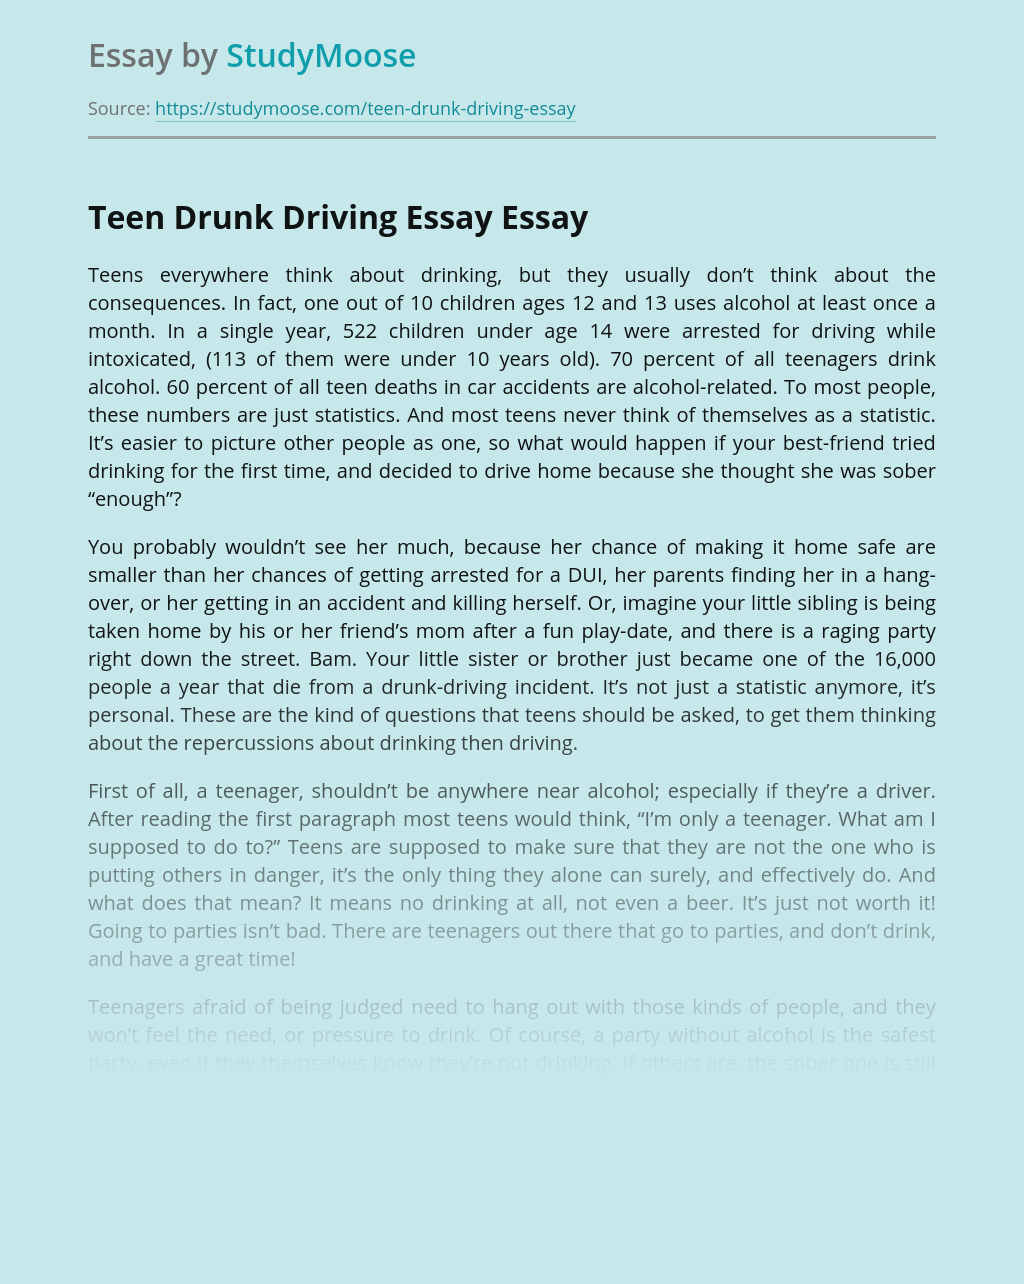 Drinking and driving essays business research topics for college students quantitative